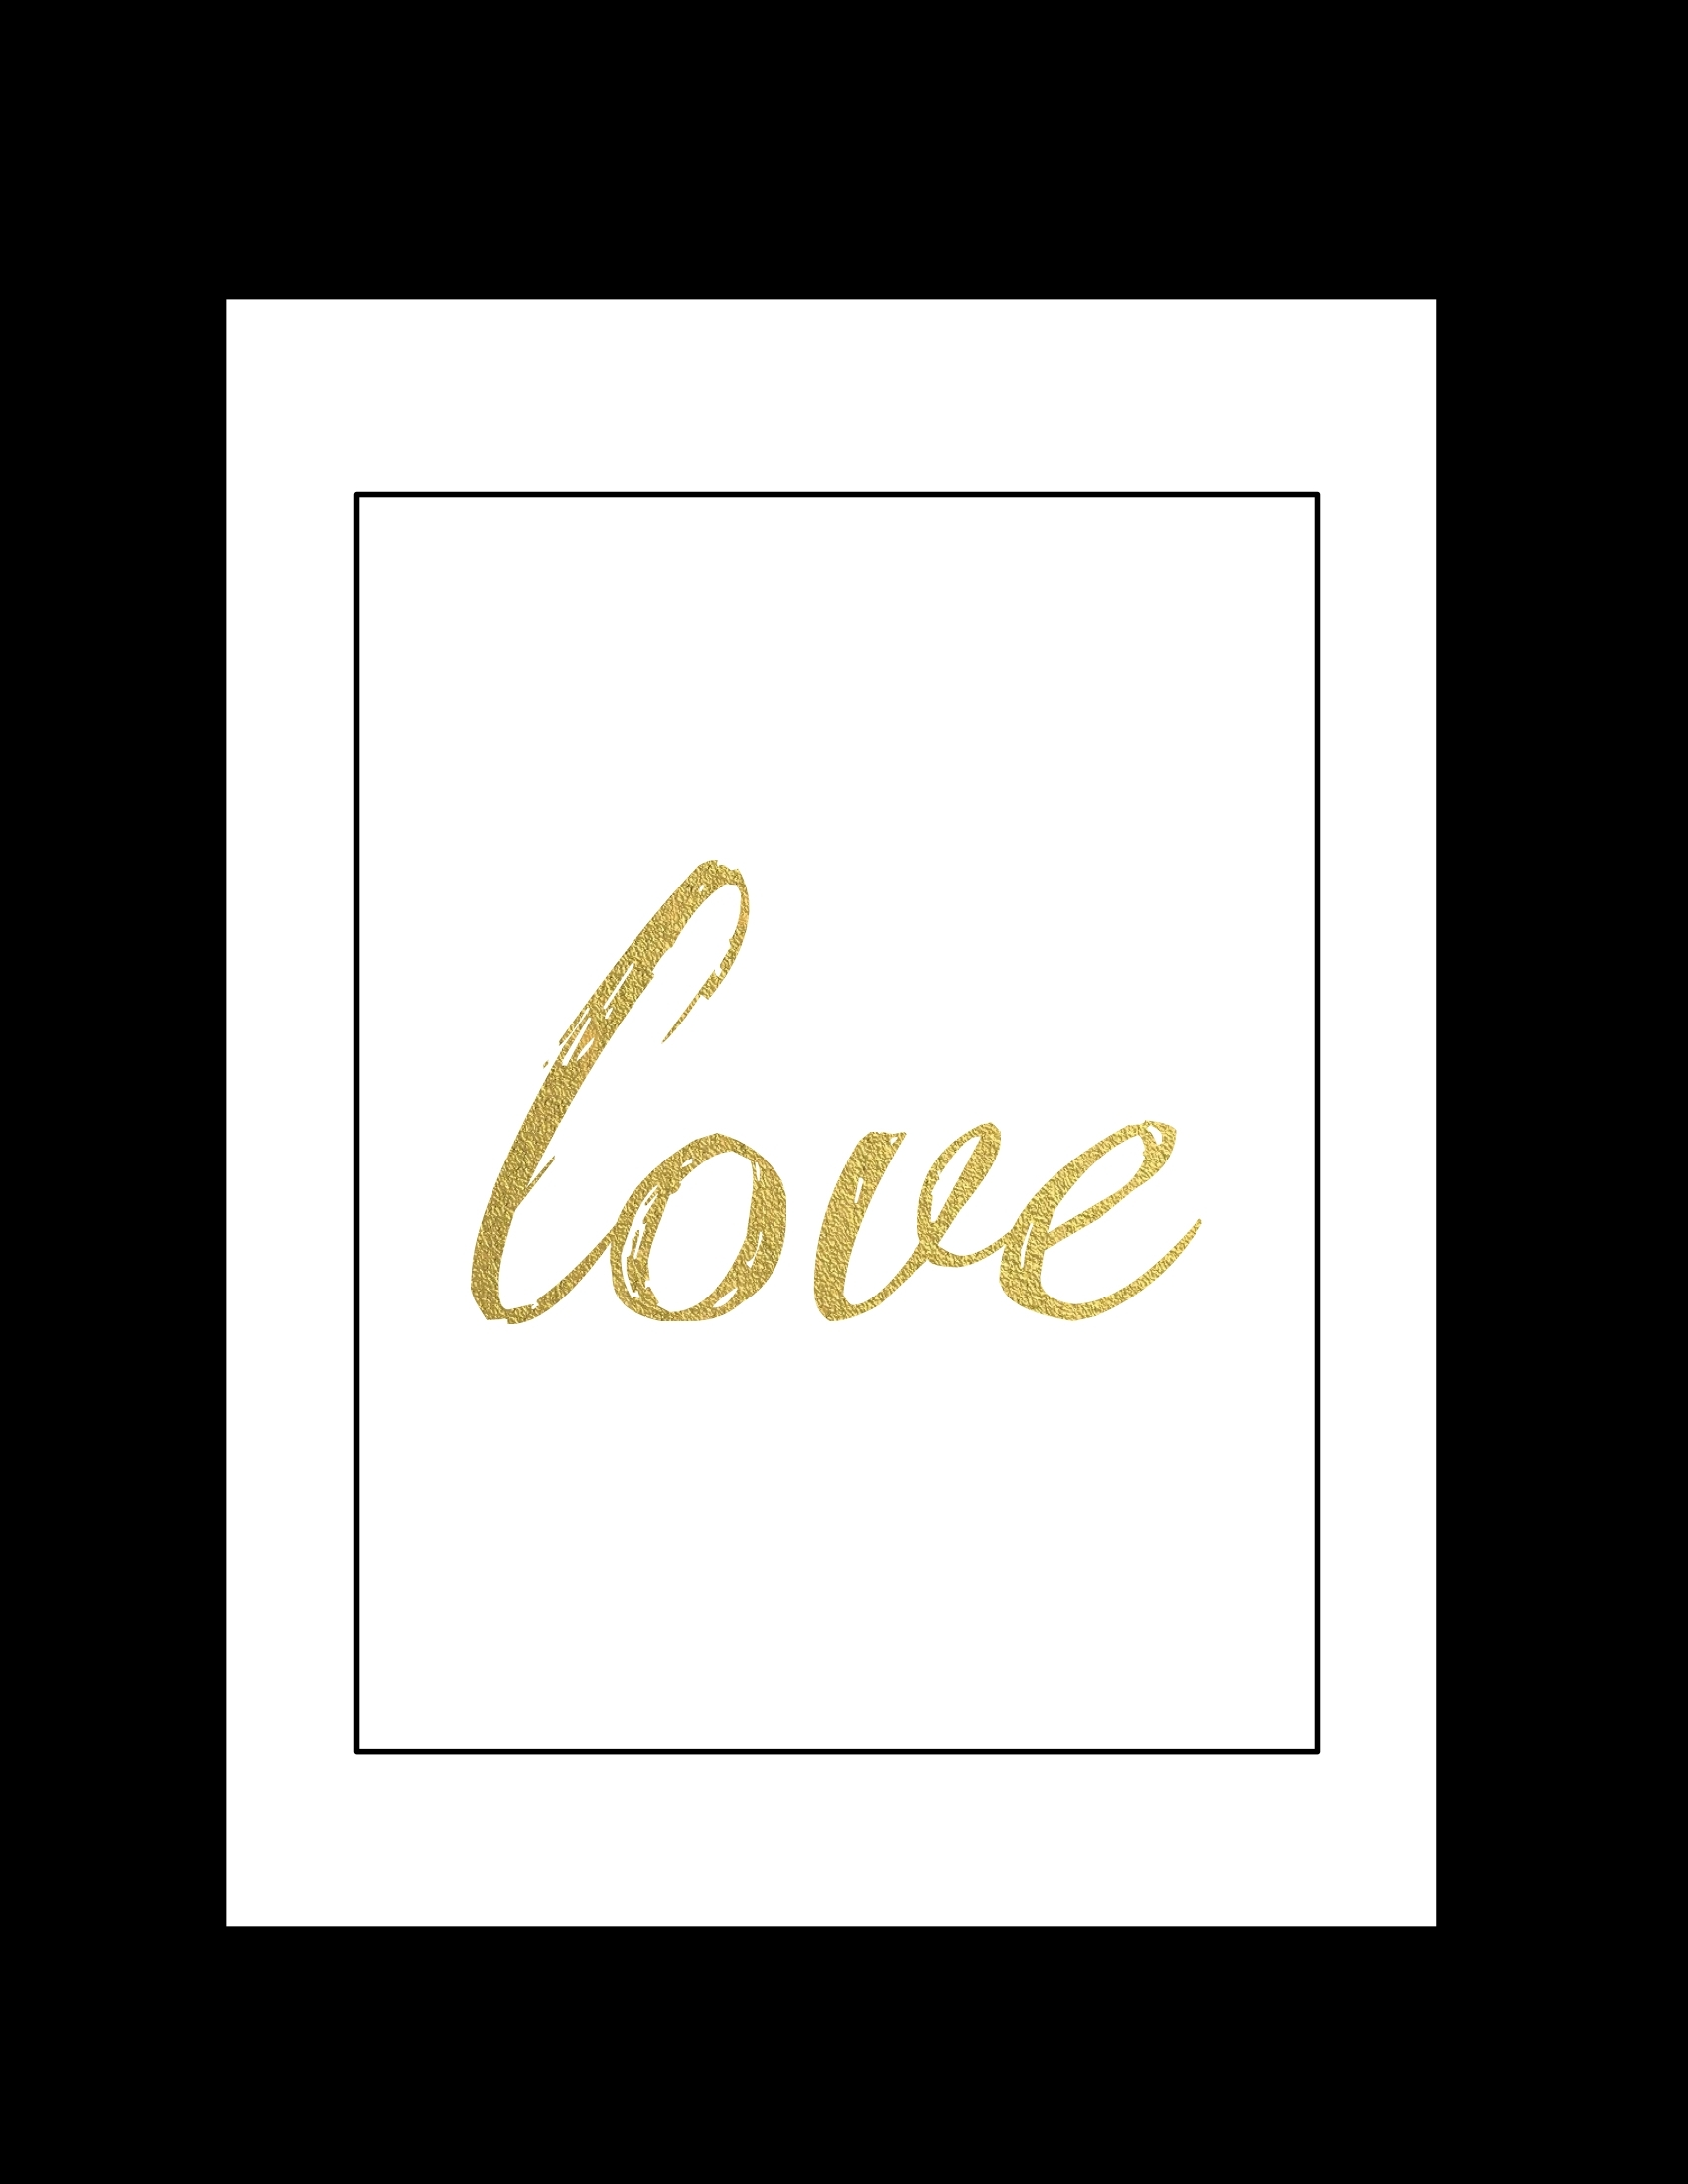 Free Printable Wall Art: Black And Gold Love – Paper Trail Design Inside Latest Free Printable Wall Art Decors (View 9 of 20)